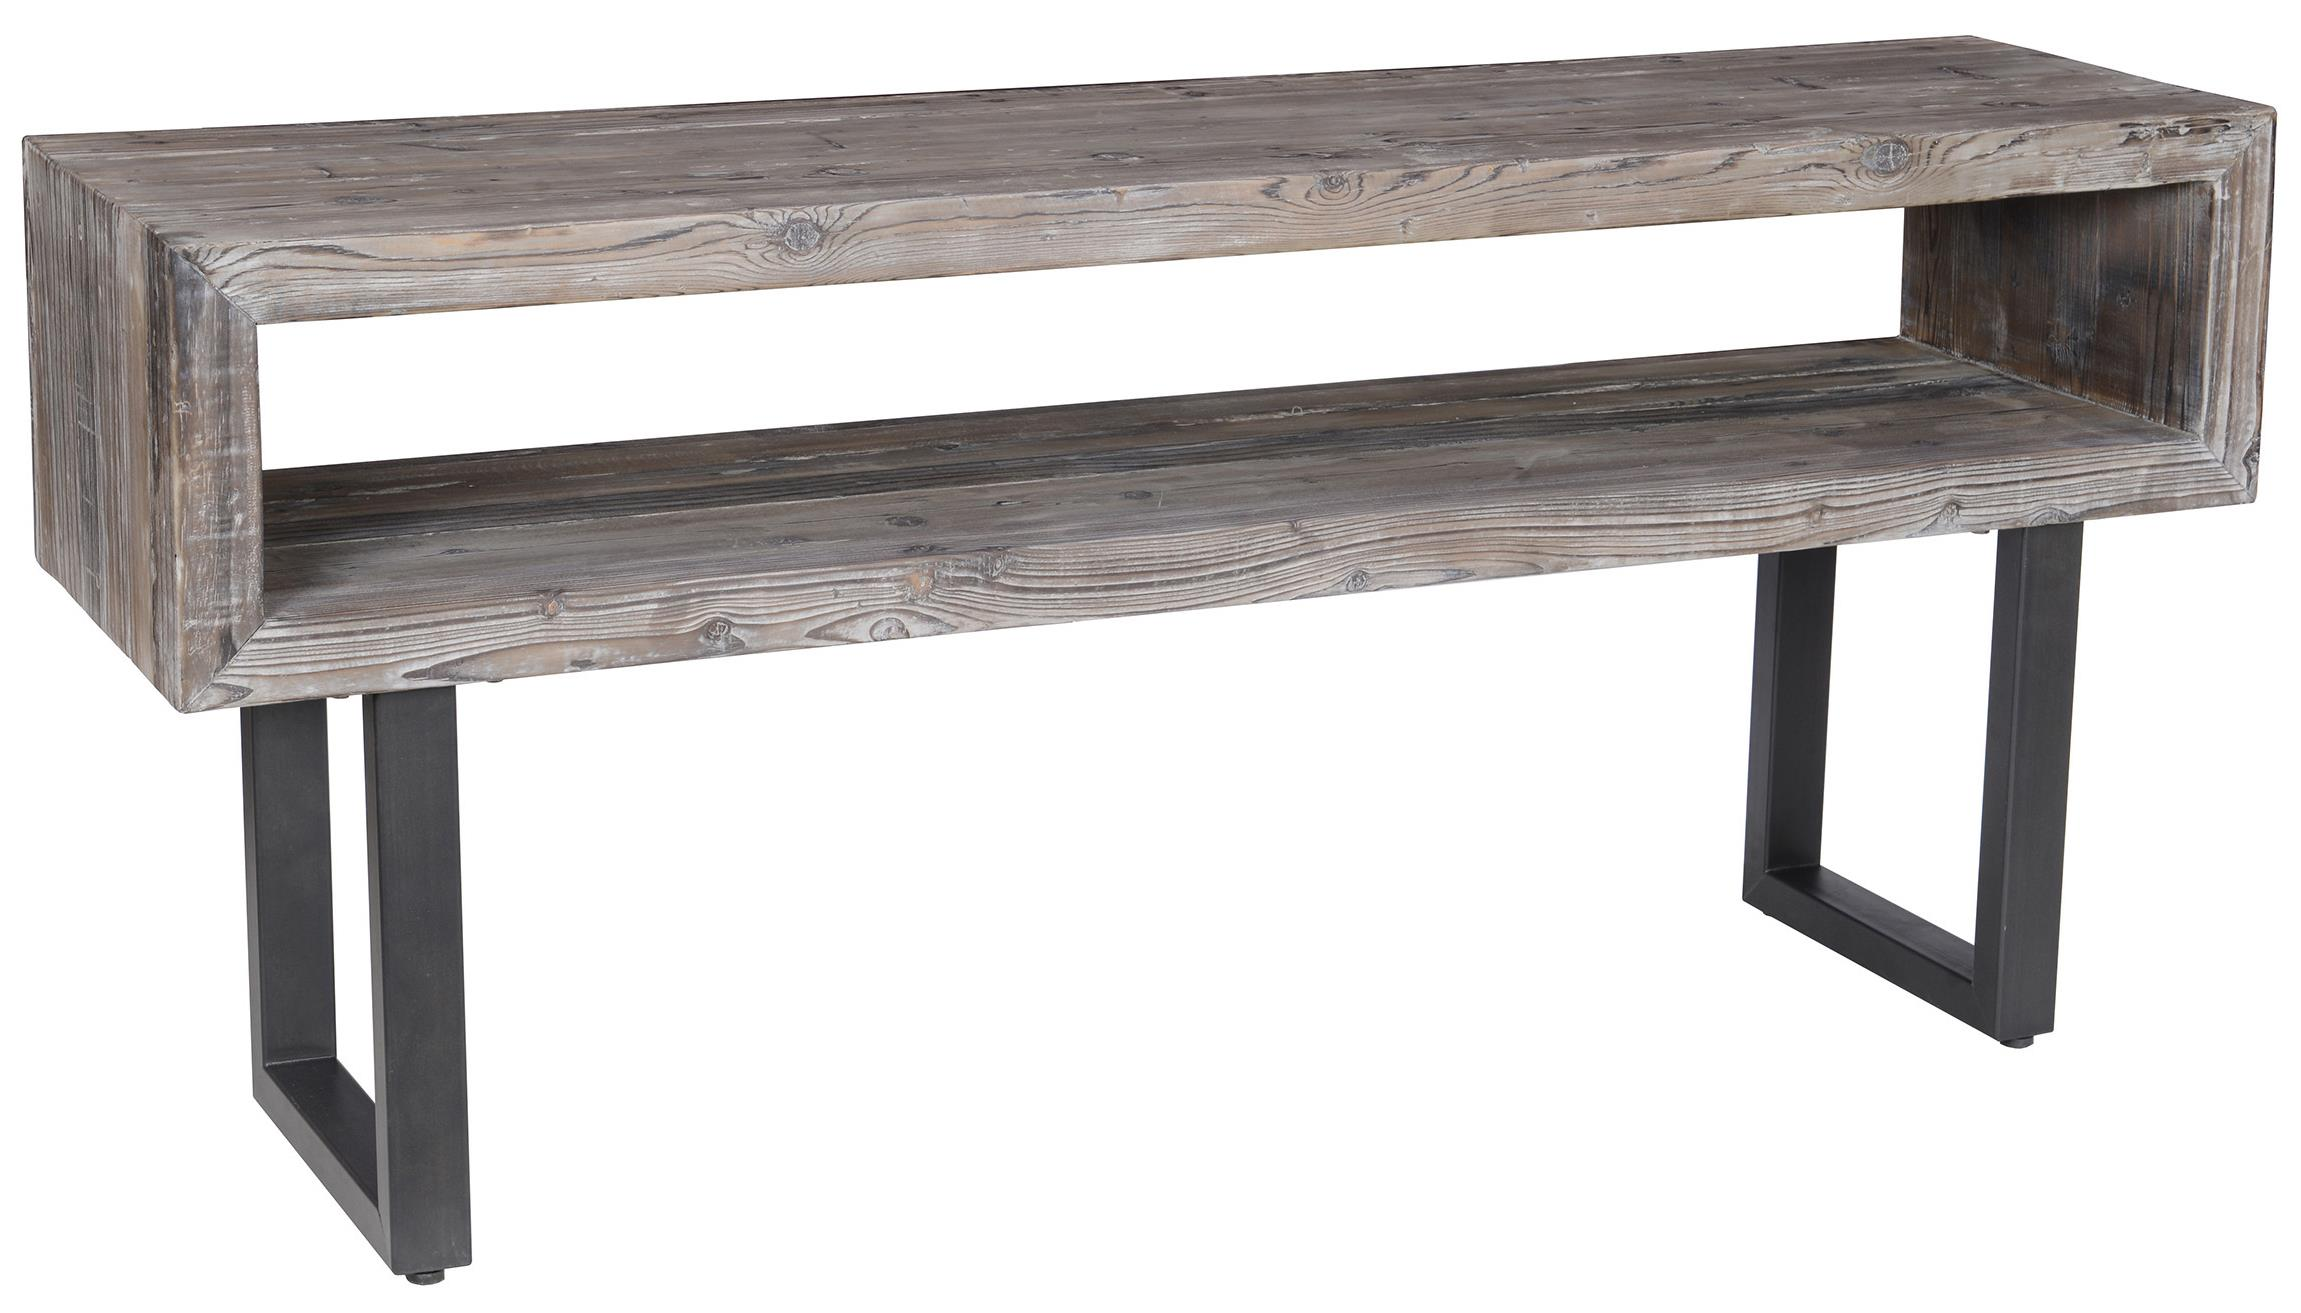 Classic home corsica 51030029 console table with black for Sofa table vs console table